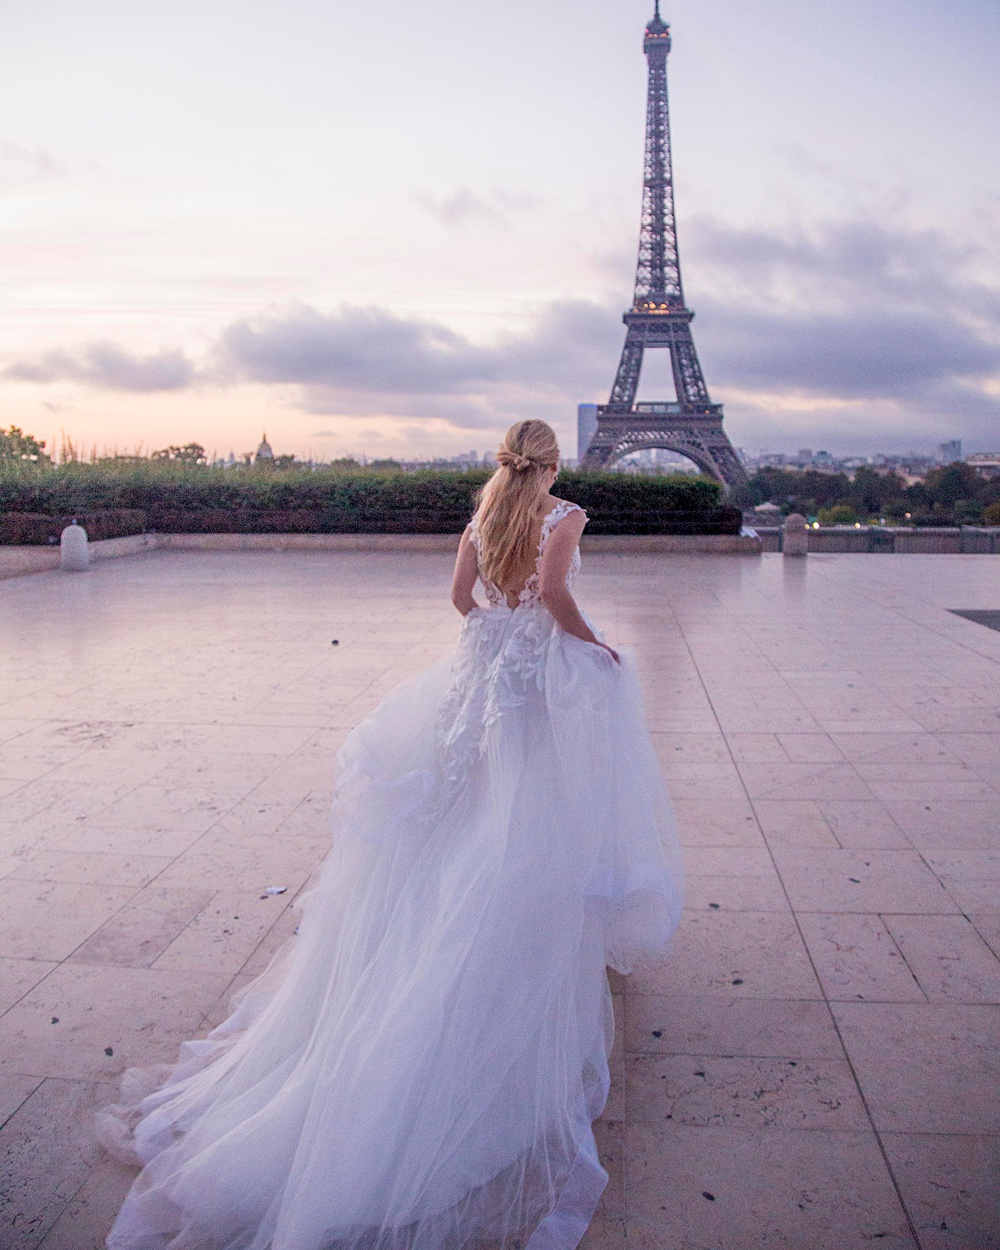 Eiffel Tower Runaway Bride Photo